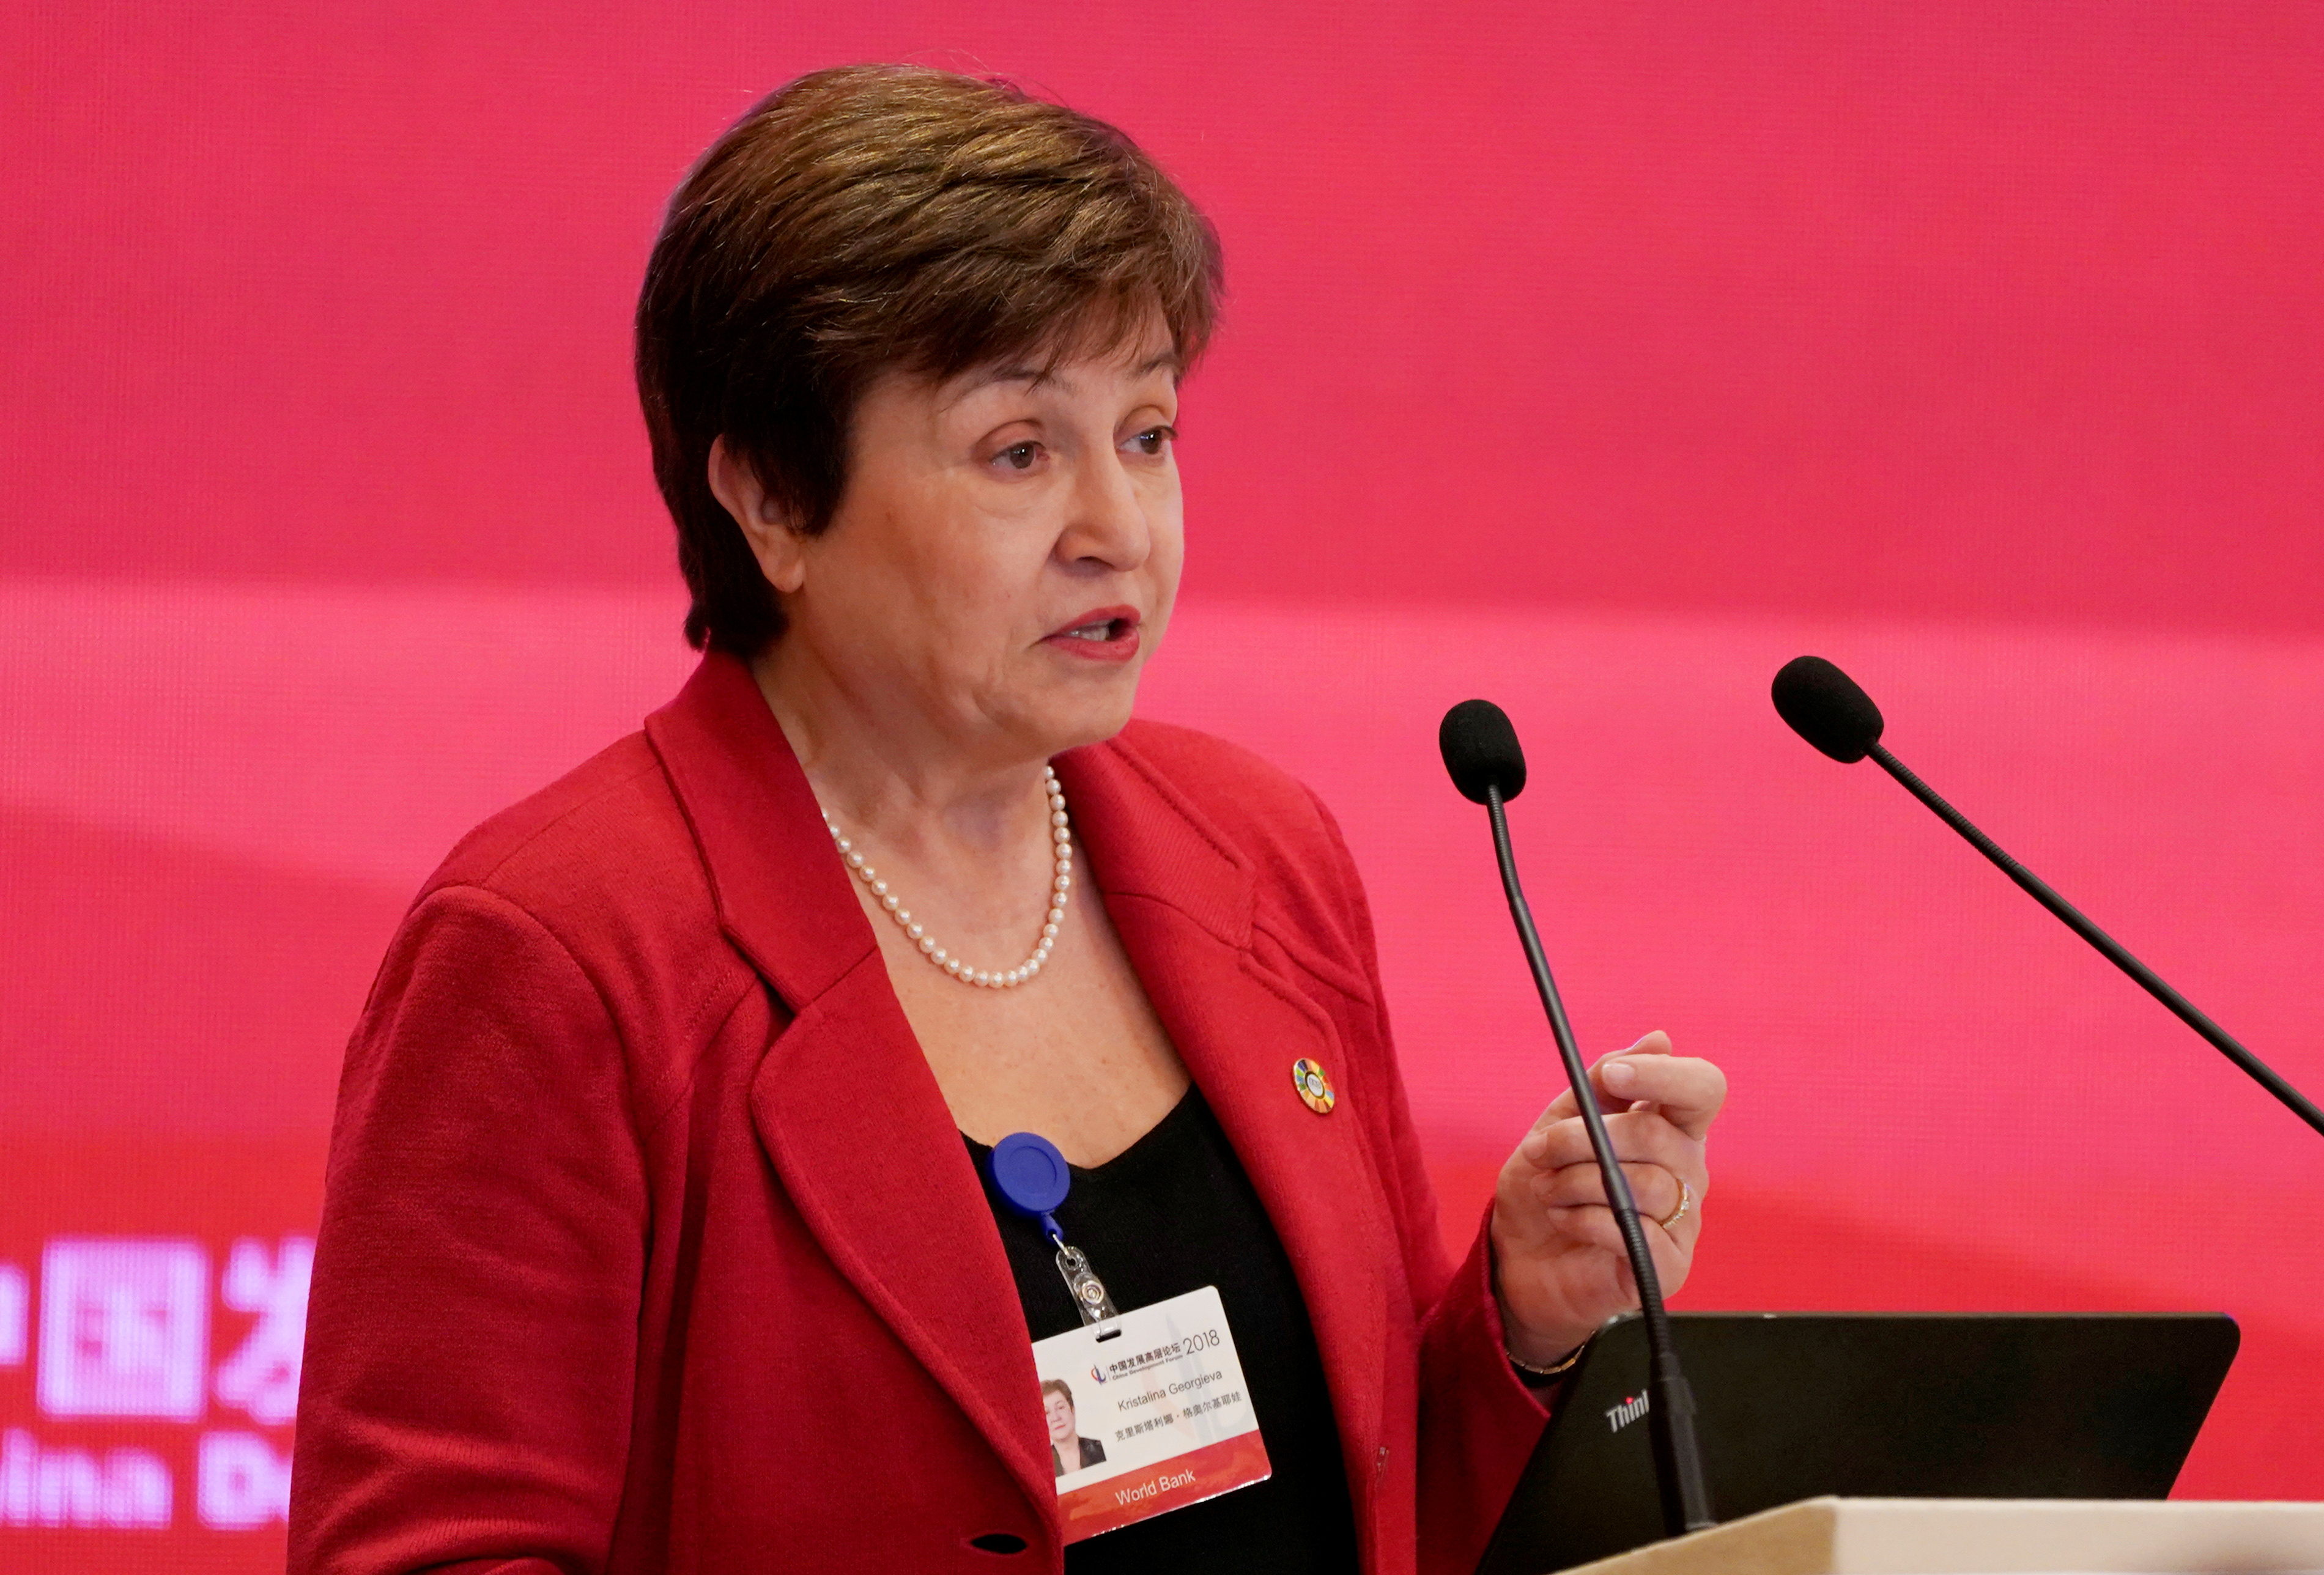 World Bank Chief Executive Officer Kristalina Georgieva speaks at the annual session of China Development Forum (CDF) 2018 at the Diaoyutai State Guesthouse in Beijing, China March 25, 2018. REUTERS/Jason Lee